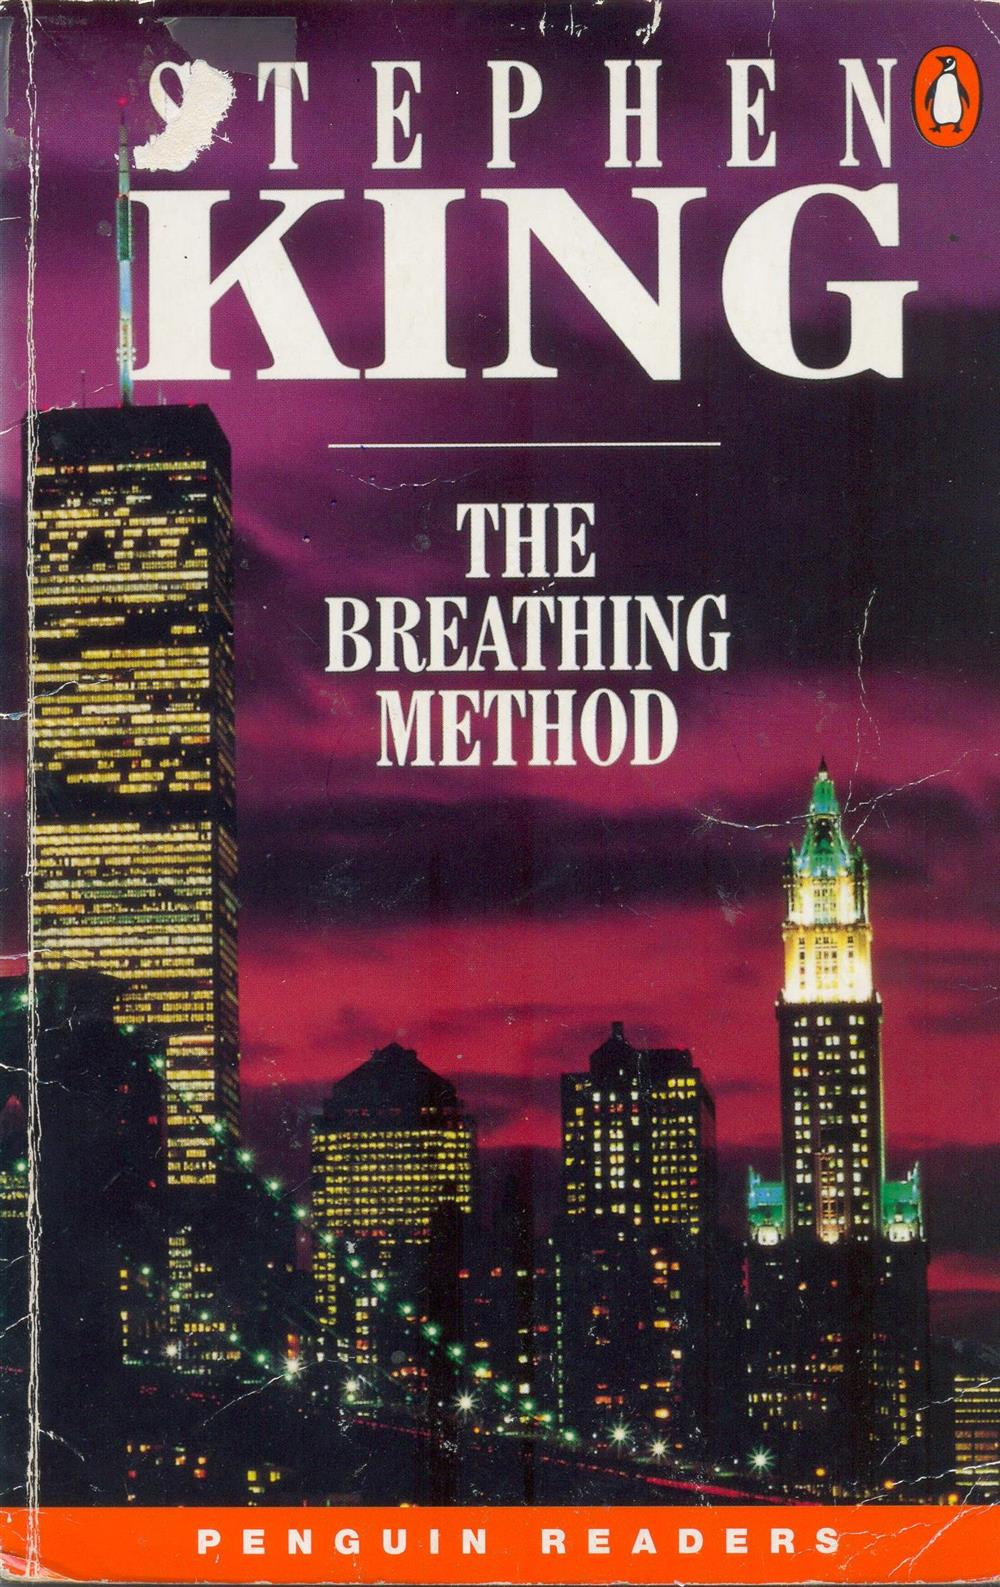 The breathing method 001.jpg